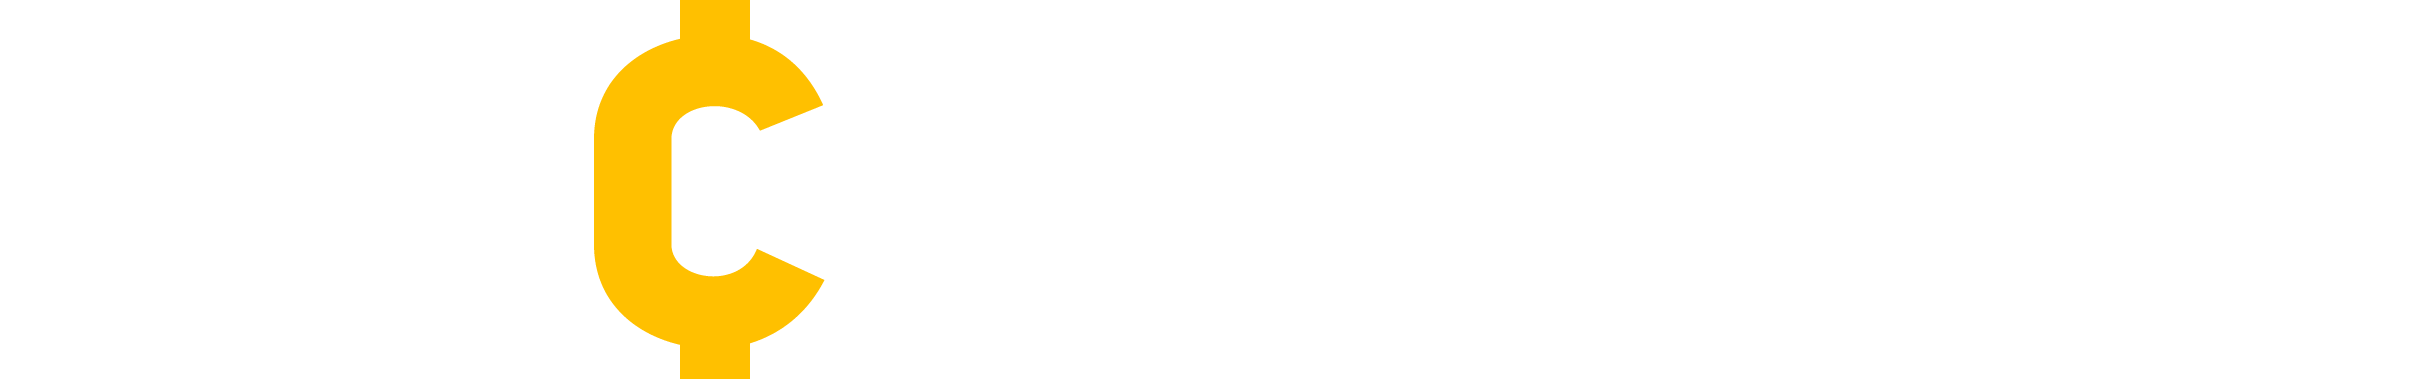 mycrypter fixed logo